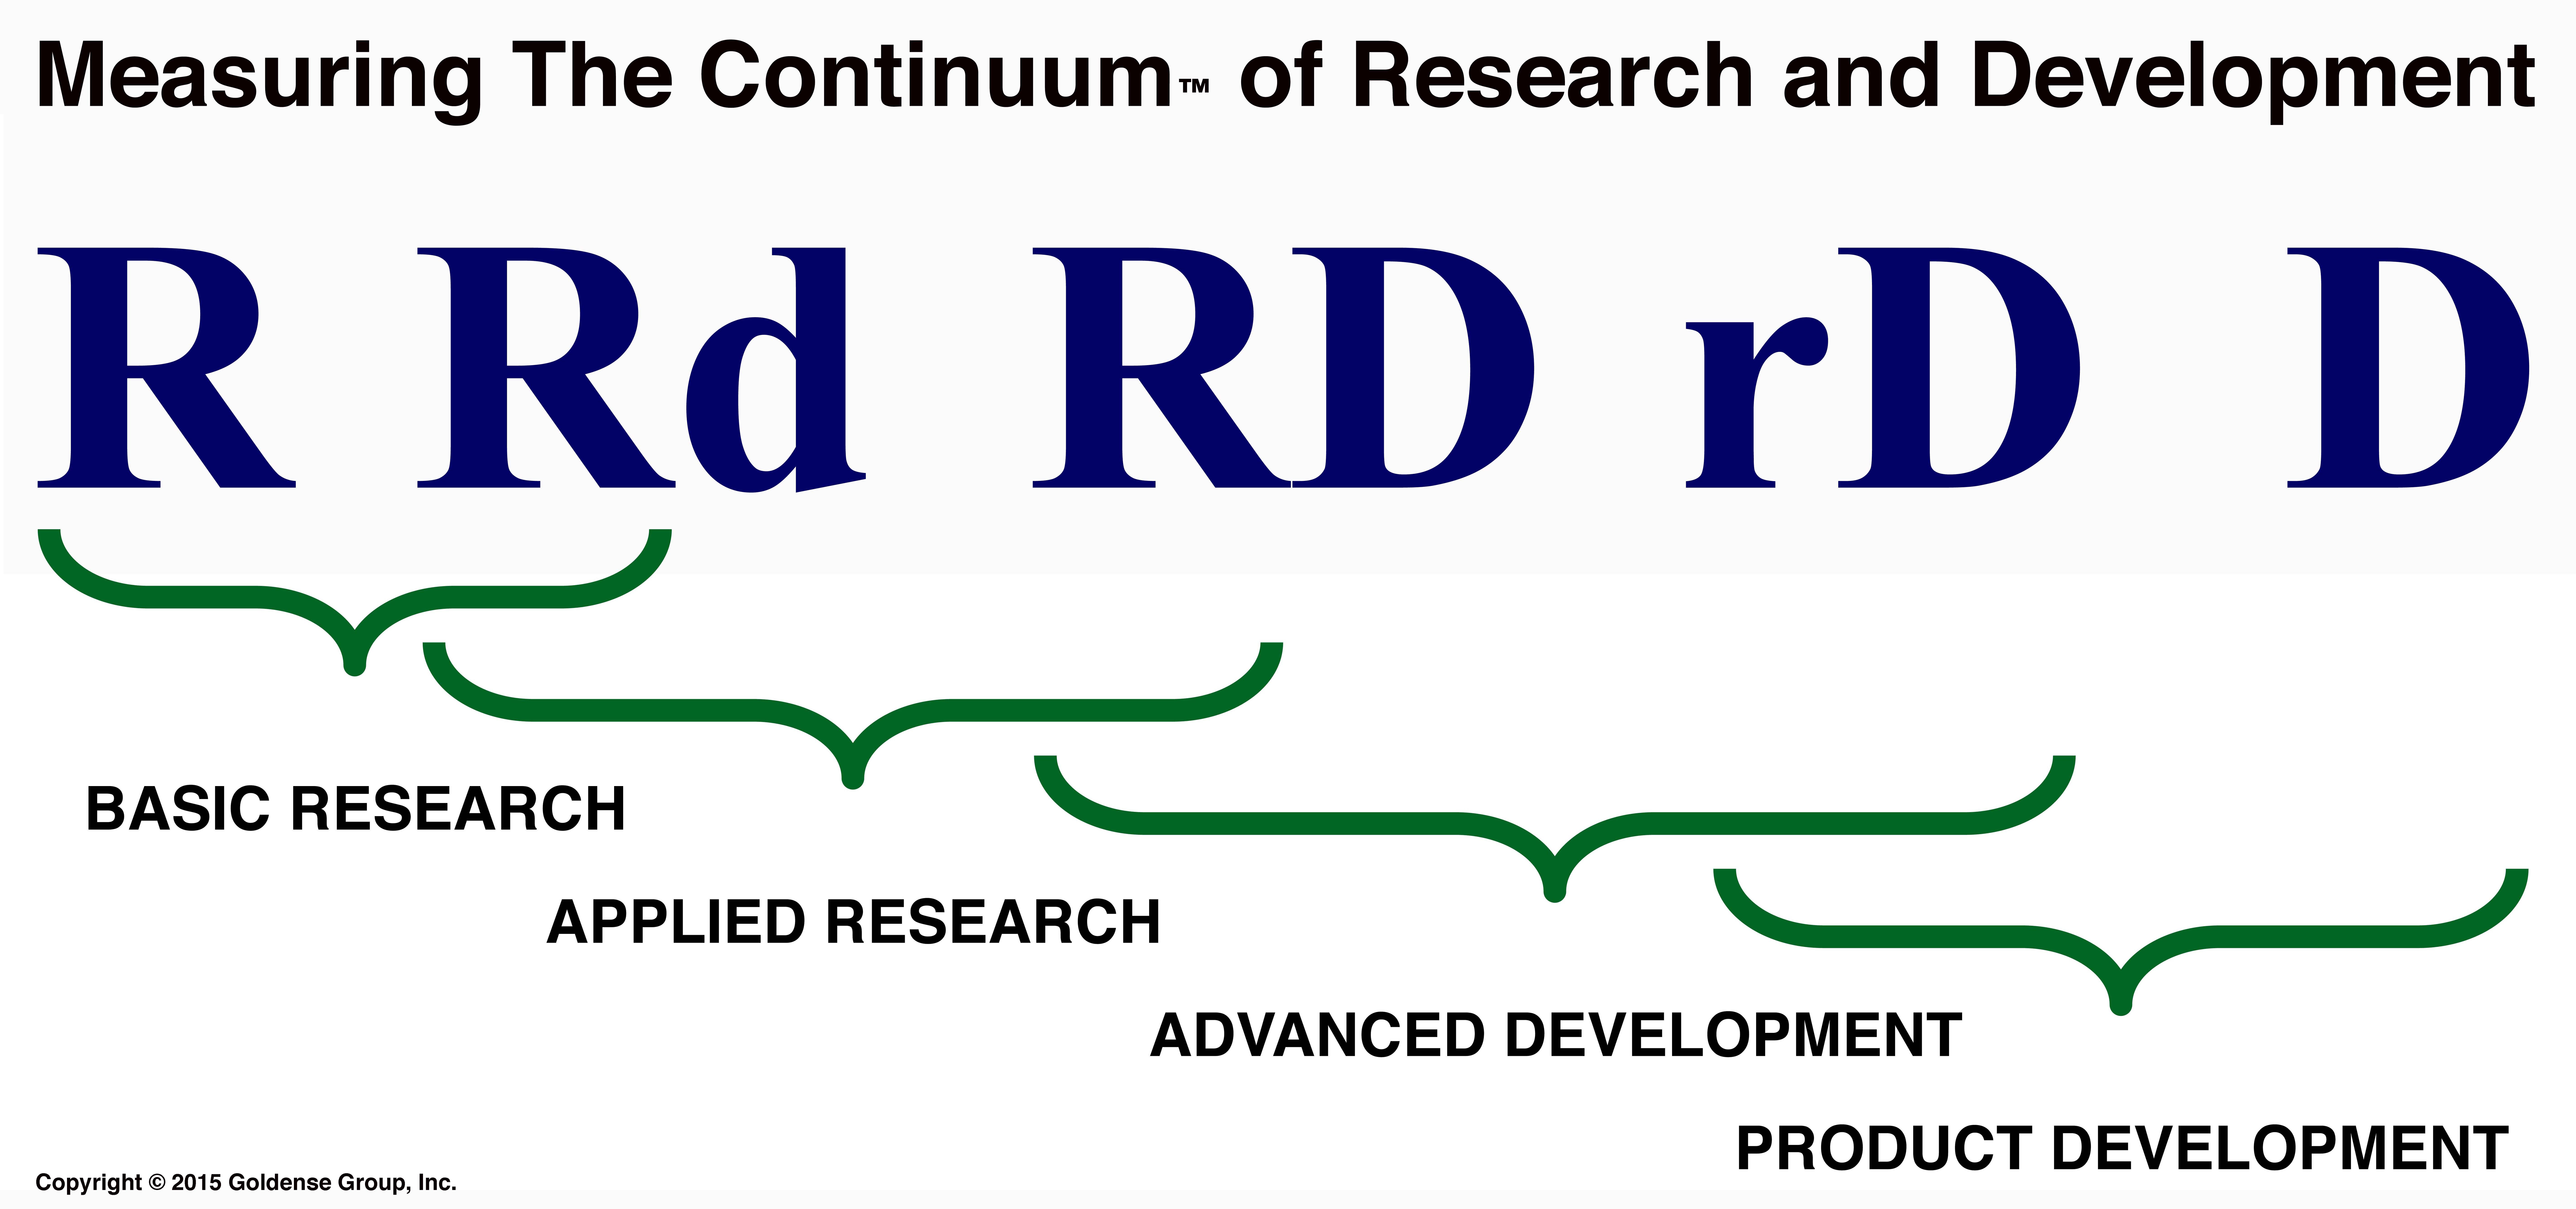 measuring-the-continuum-of-research-and-development.jpg